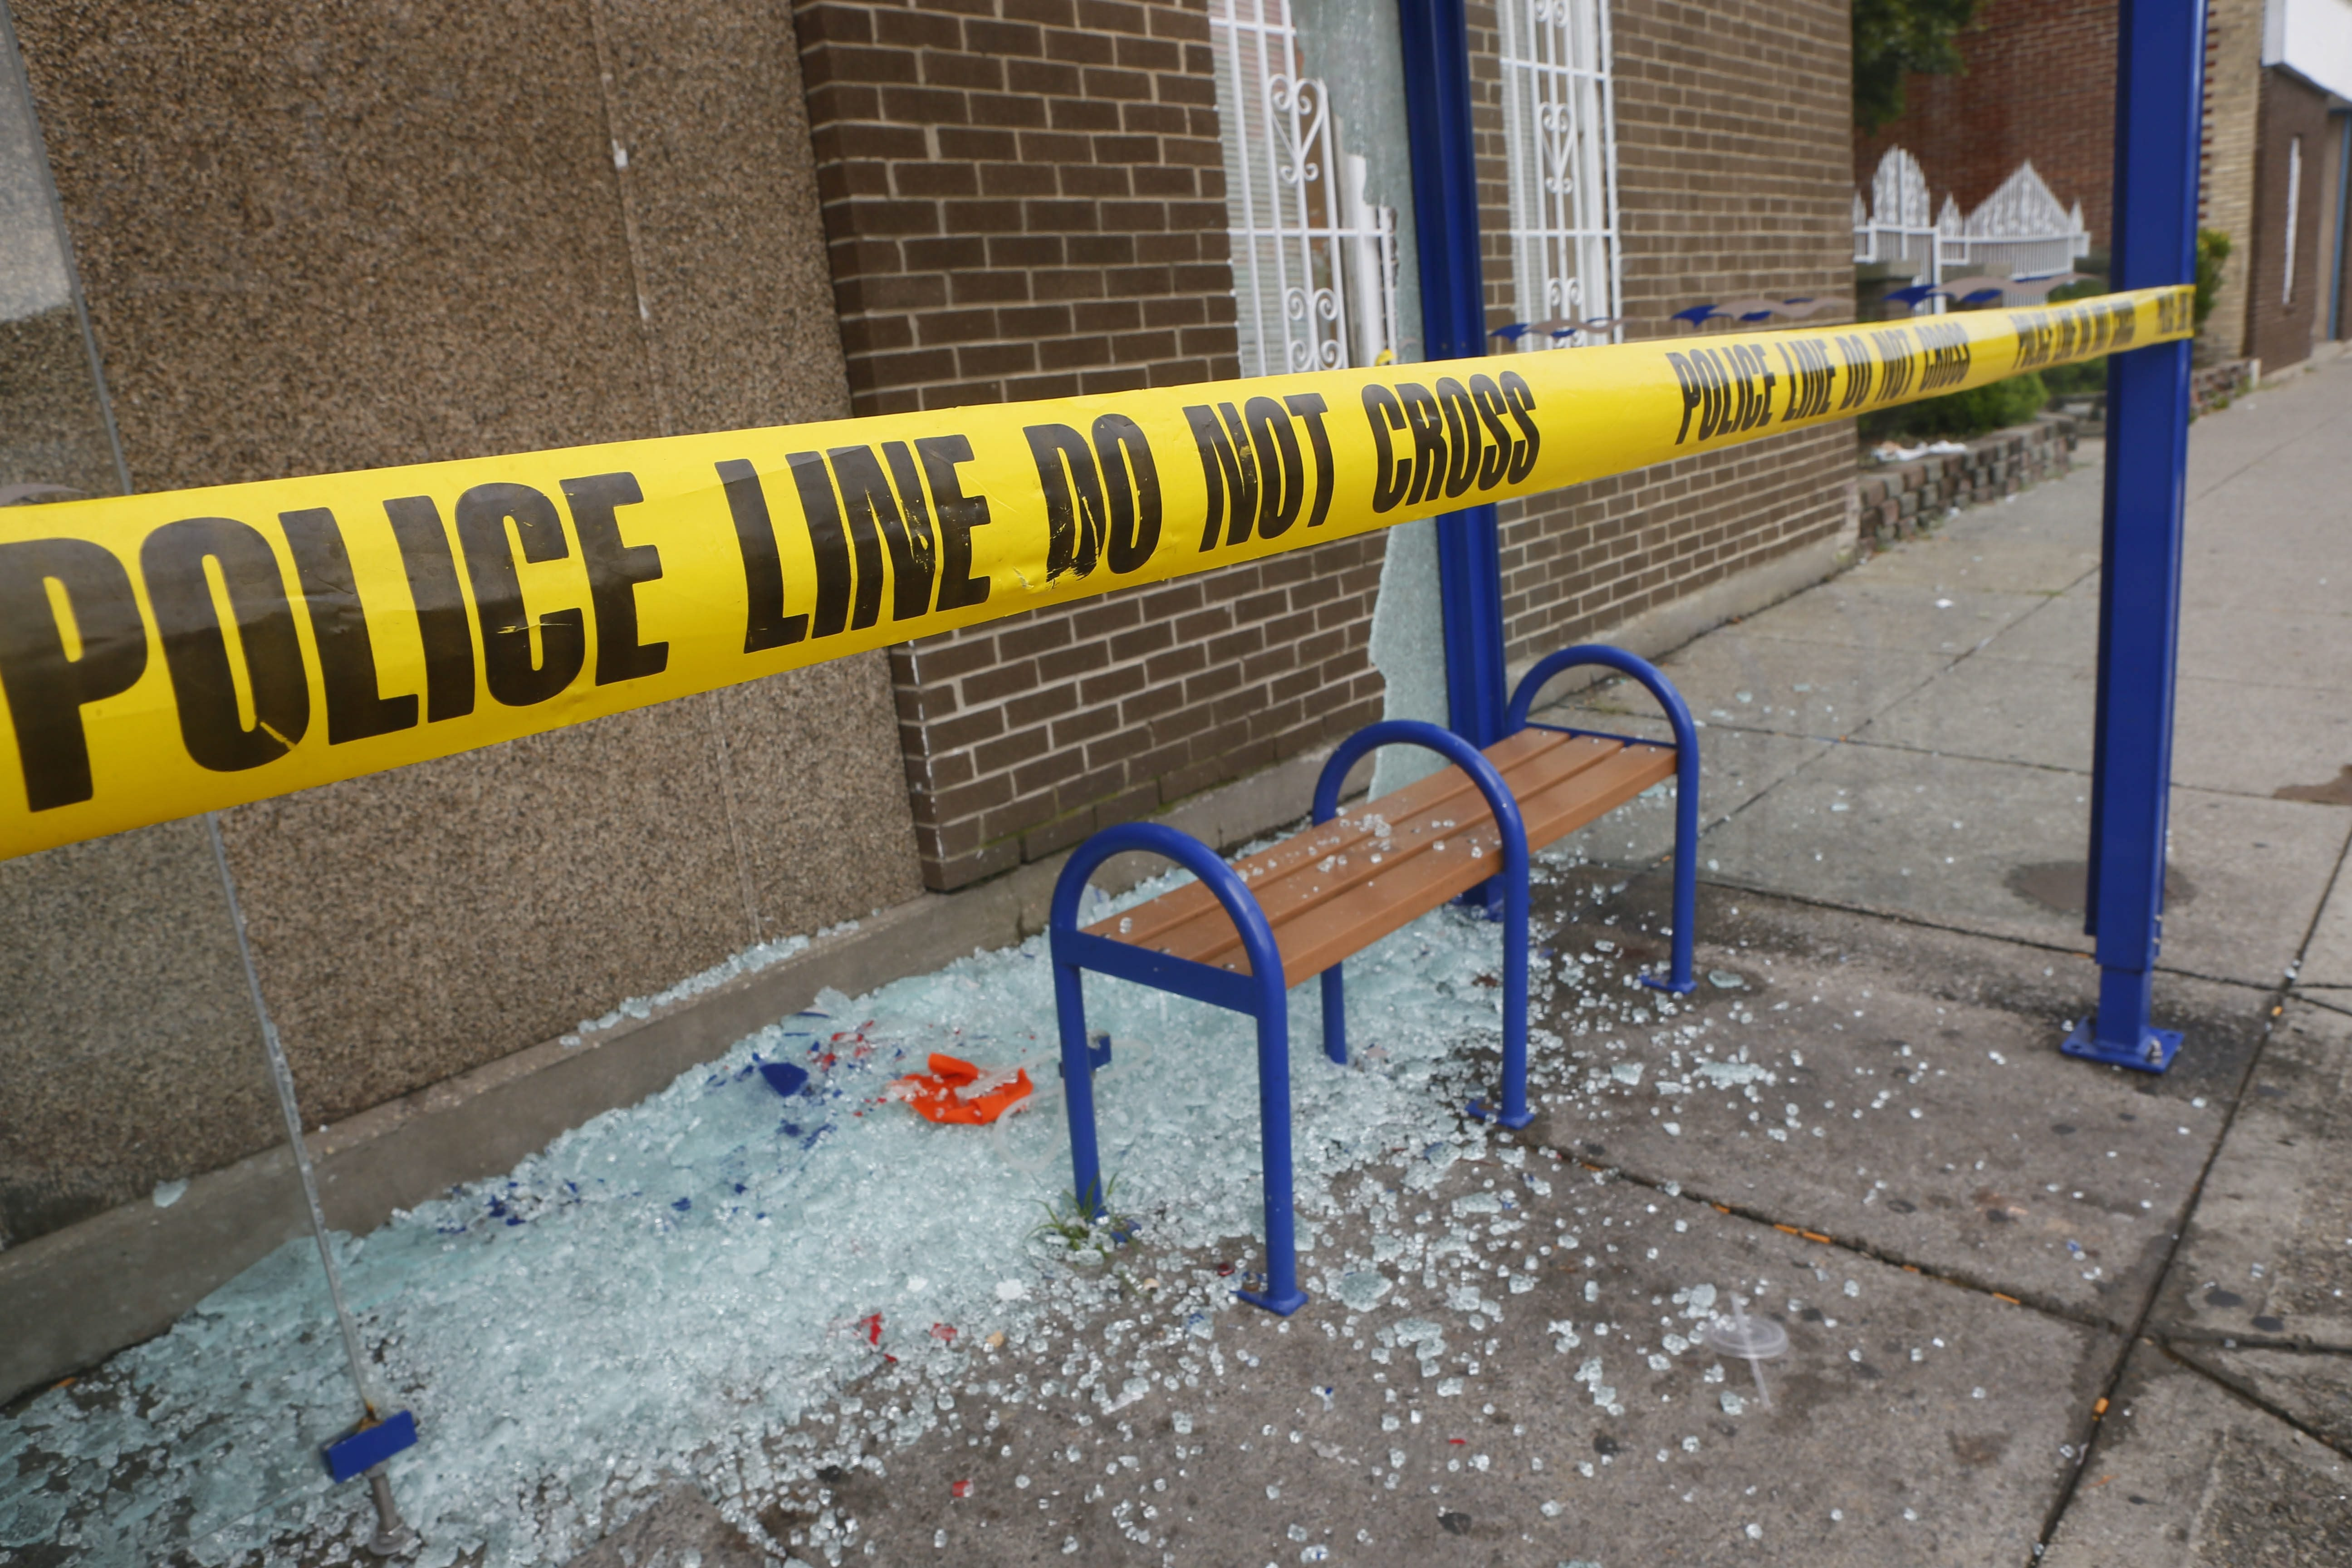 A large pile of broken glass remains Wednesday after vandals overnight damaged several bus stops on Grant Street.